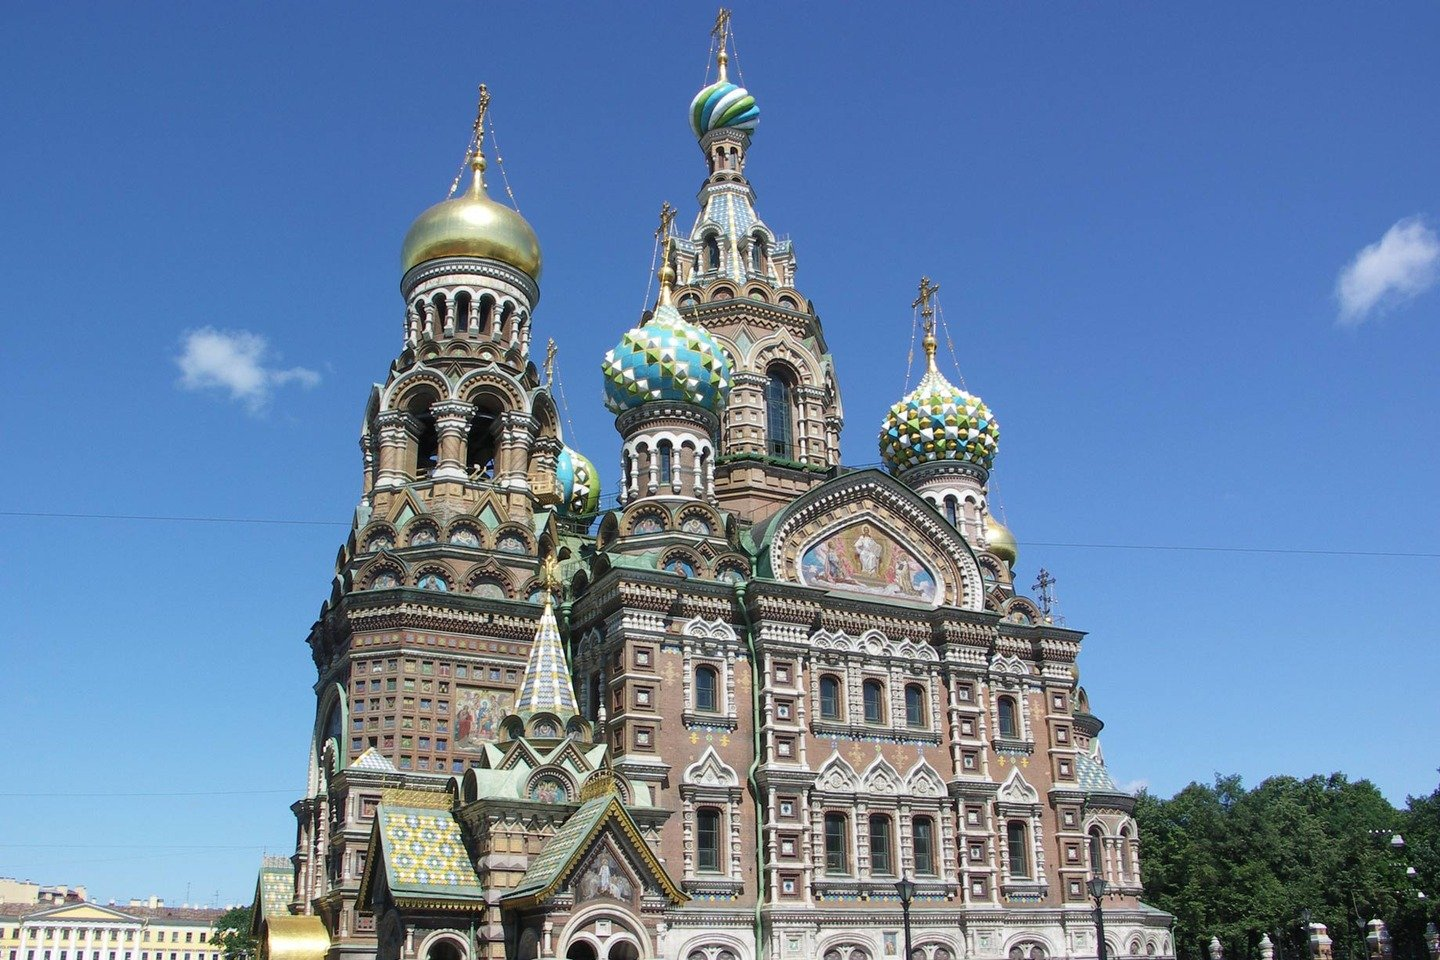 The-church-of-our-savior-on-spilled-blood